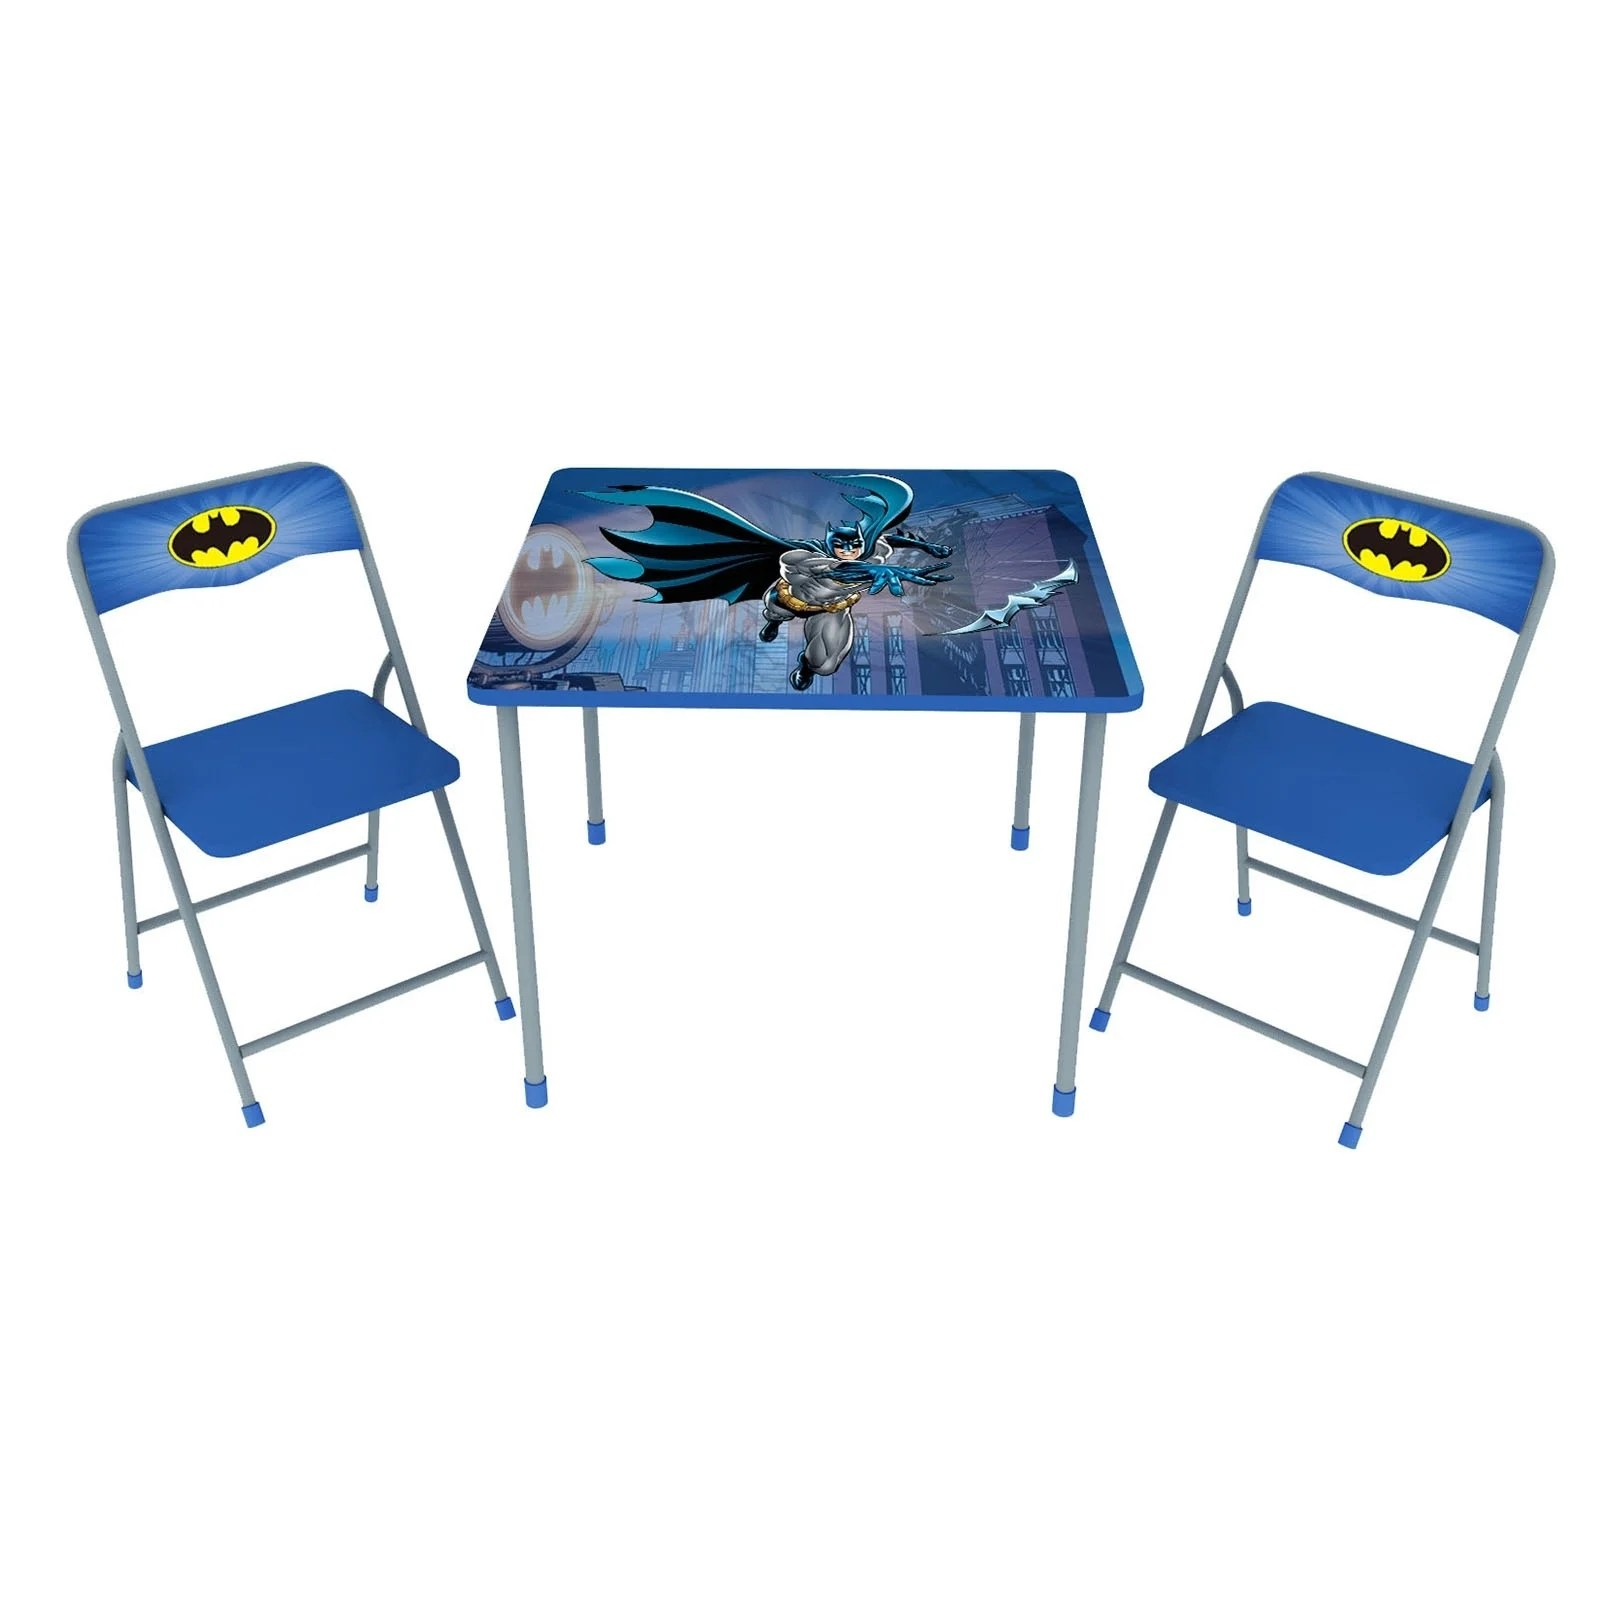 Childrens Folding Table And Chairs O Kids Batman Children S Three Piece Metal Table Chair Set